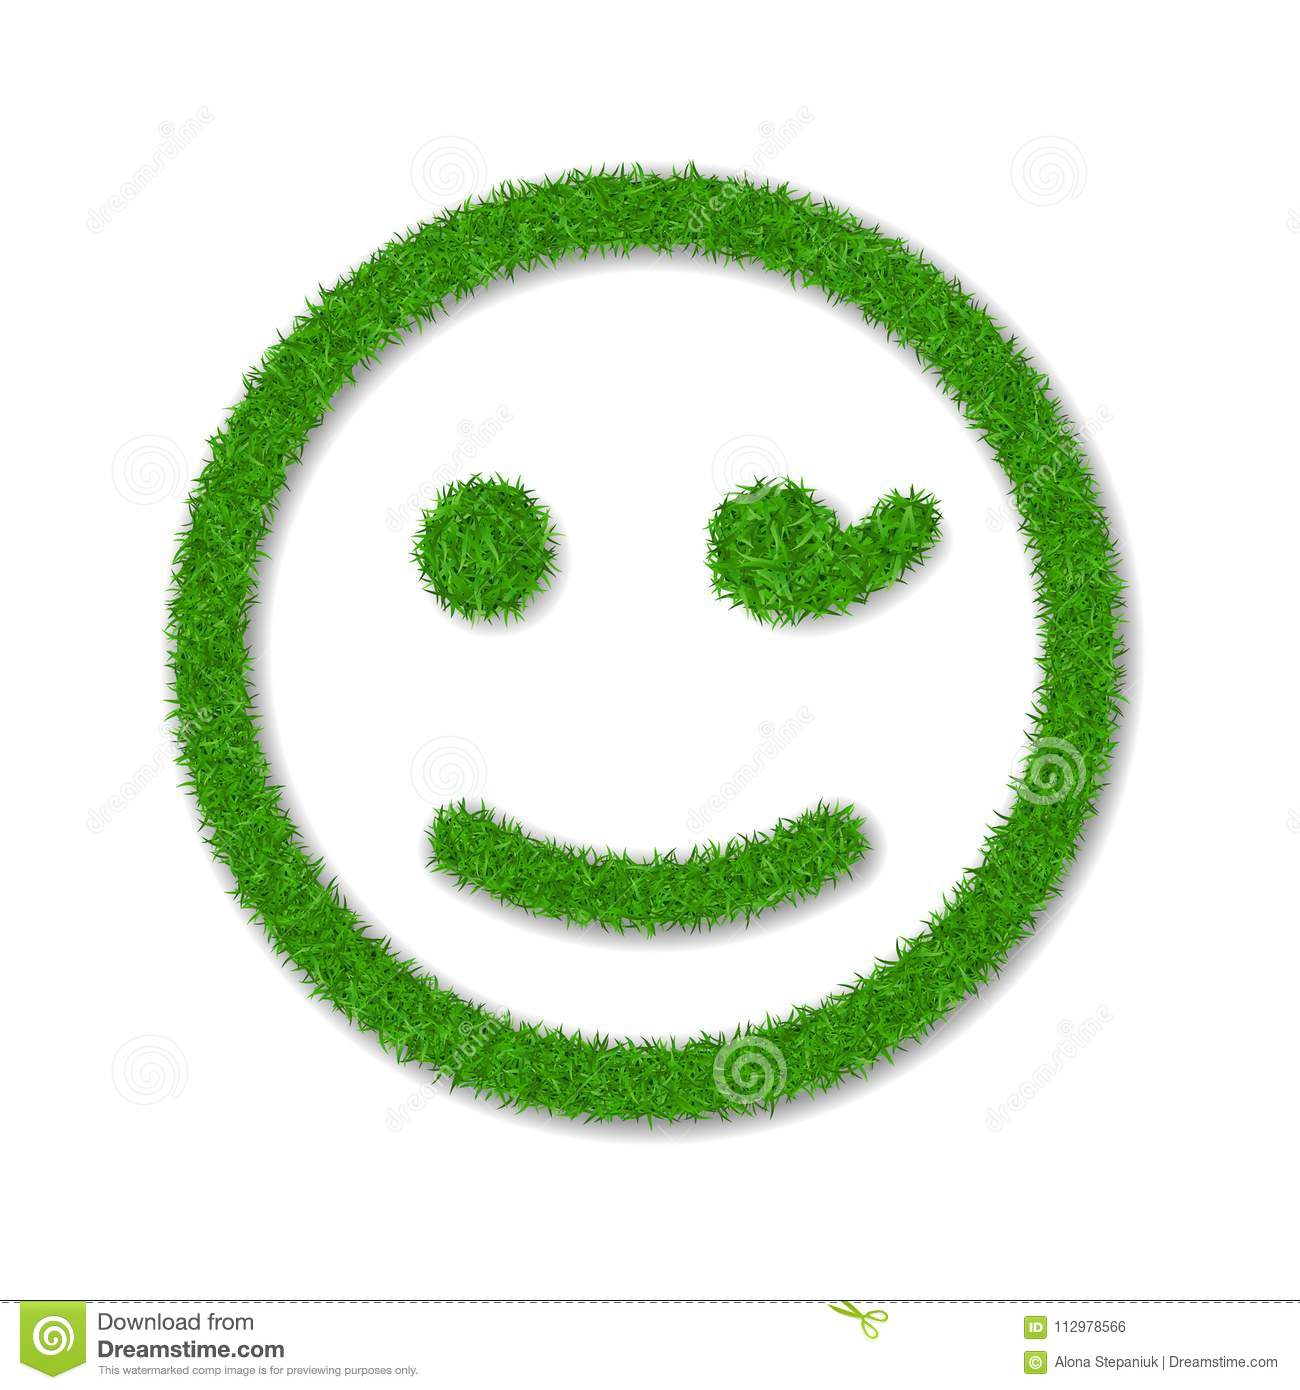 Green grass face wink smile. Smiley grassy emoticon icon, isolated white background. Happy smiling sign. Symbol ecology